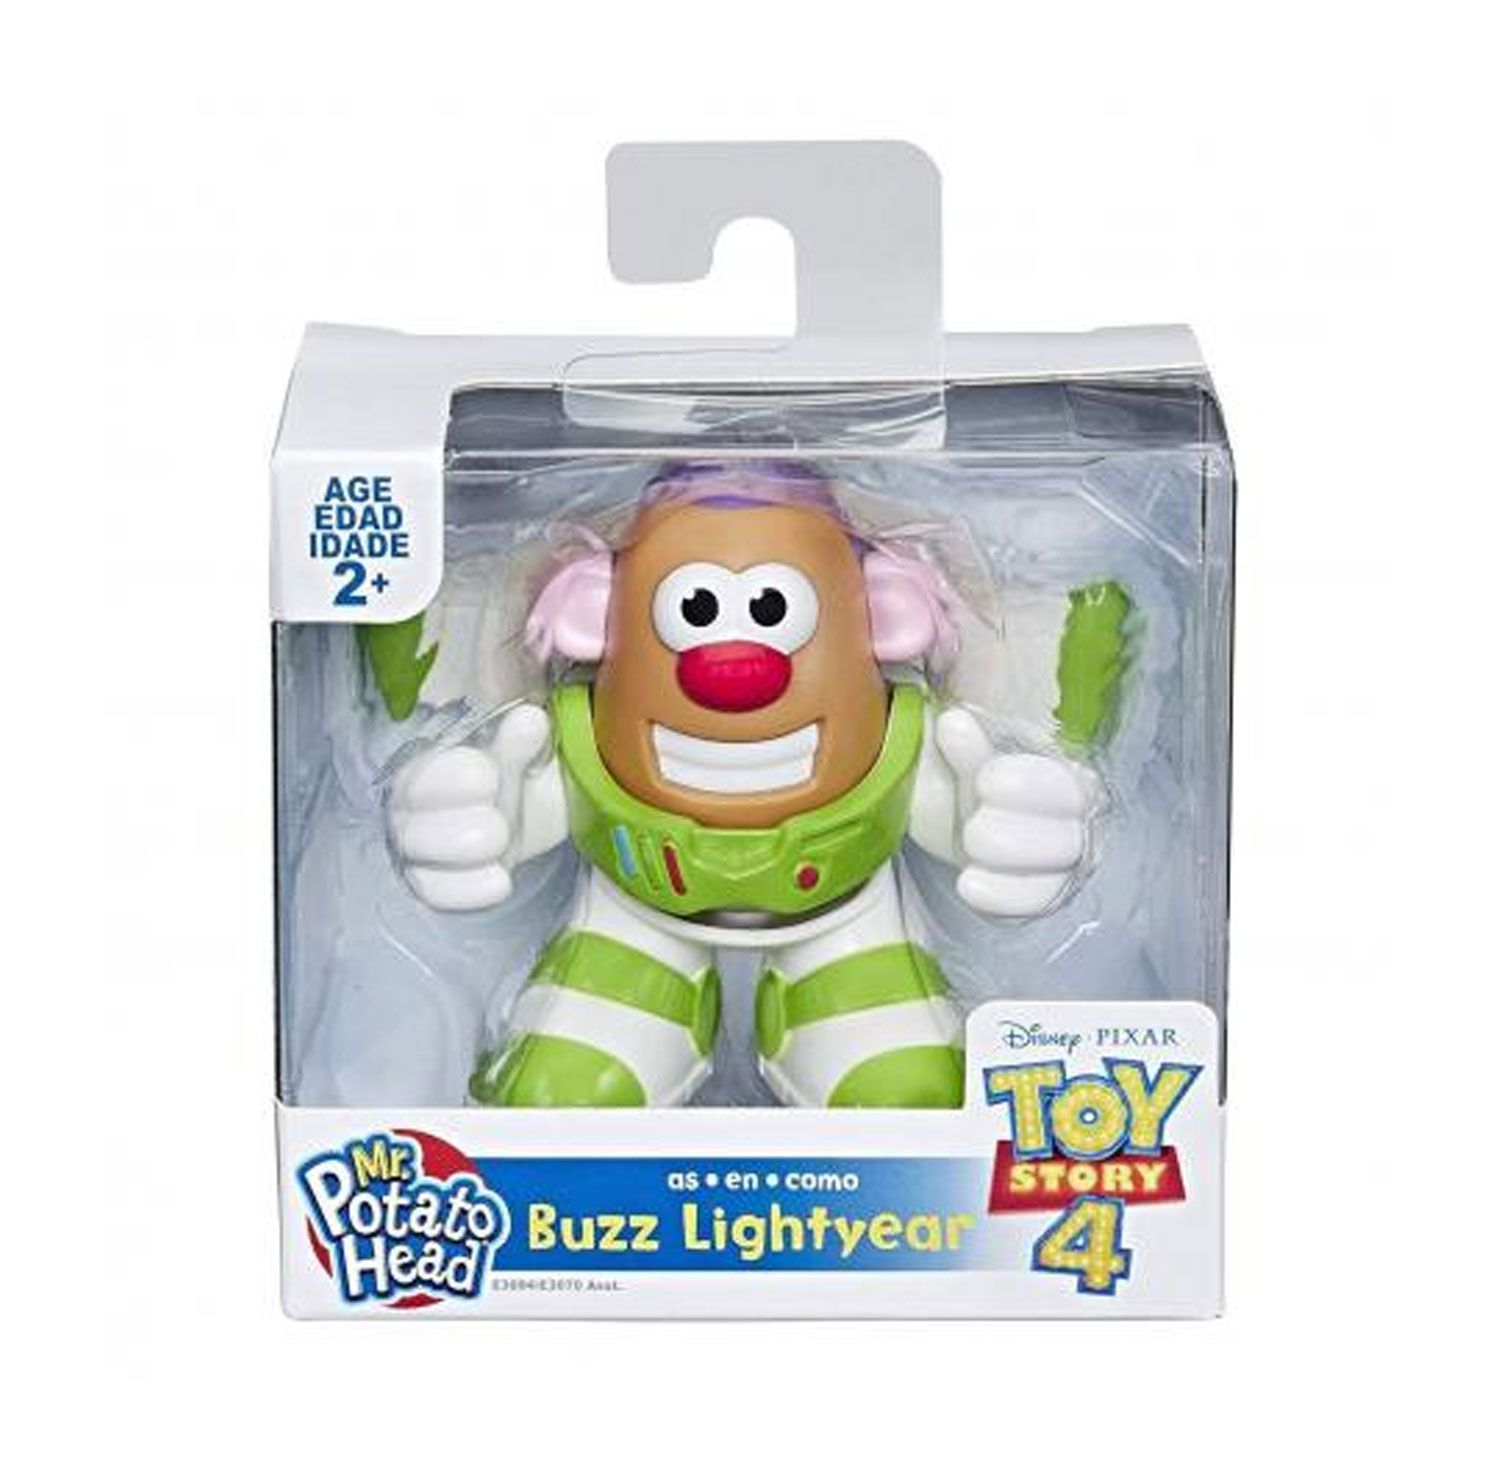 BONECO BUZZ MR POTATO HEAD TOY STORY 4 HASBRO REF:3070